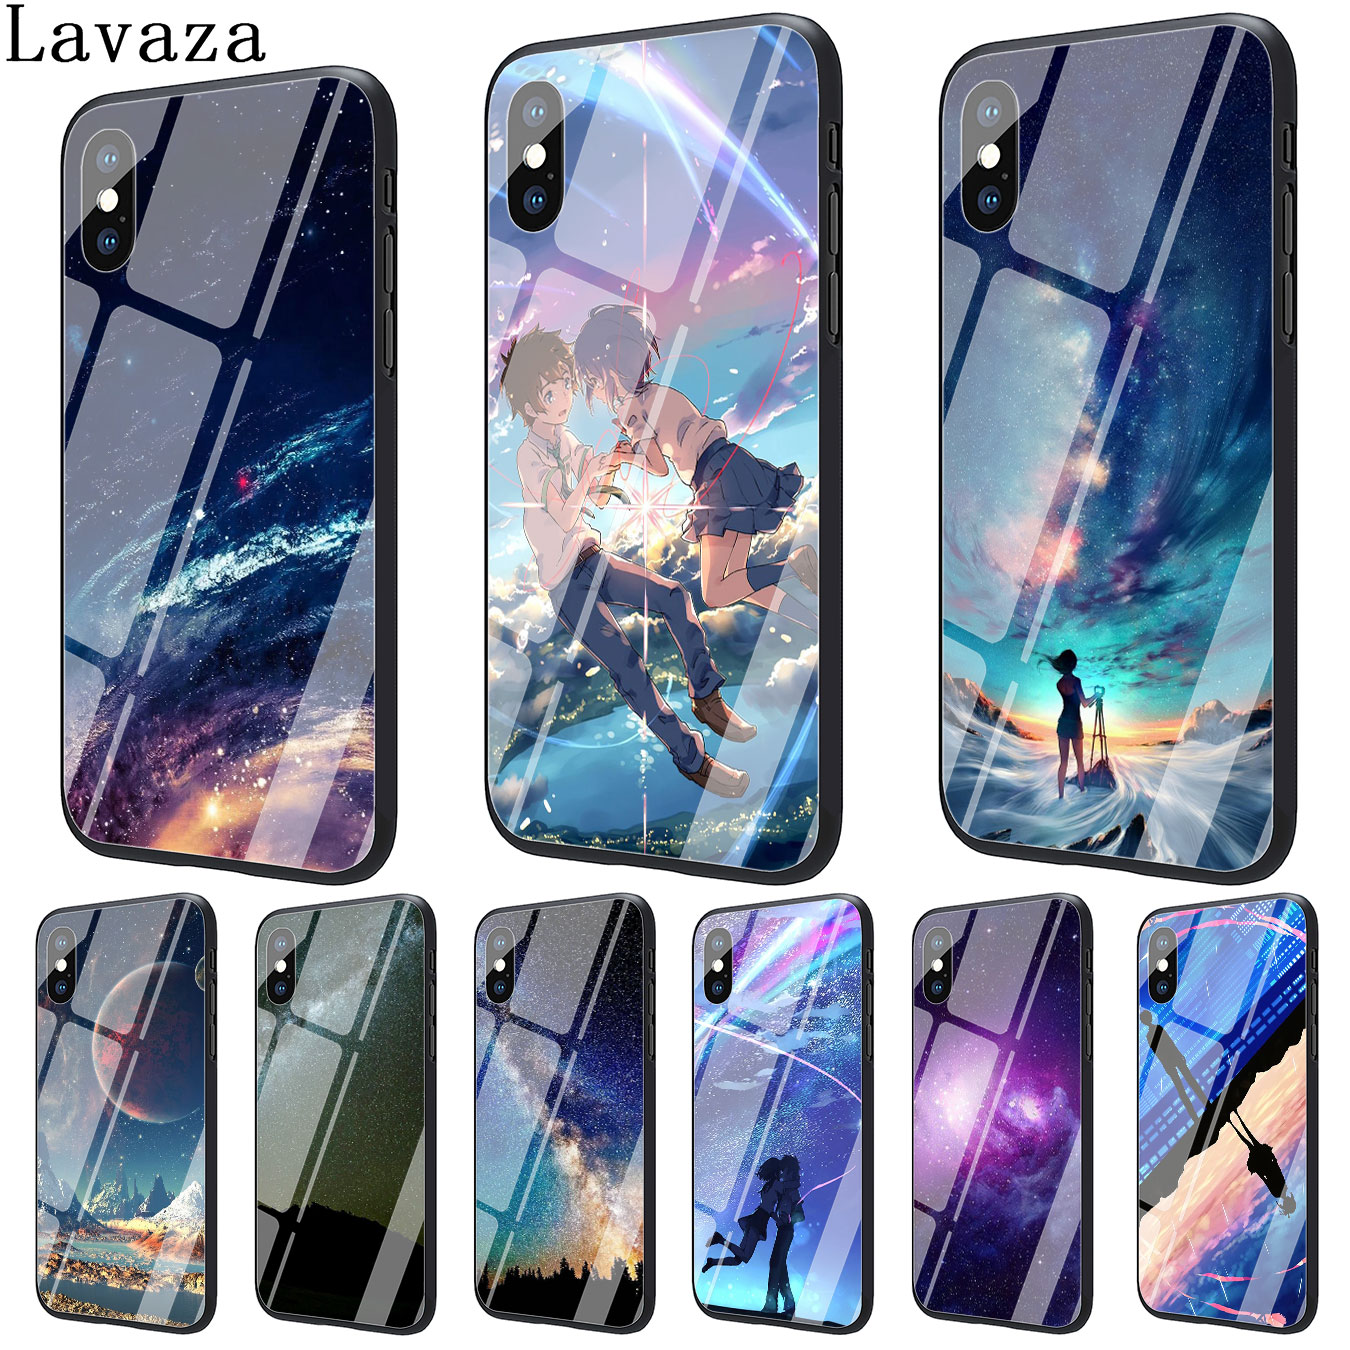 Intellective Lavaza Space Night Sky Moon Square Tempered Glass Phone Cover Case For Apple Iphone Xr Xs Max X 8 7 6 6s Plus 5 5s Se Cases Half-wrapped Case Cellphones & Telecommunications